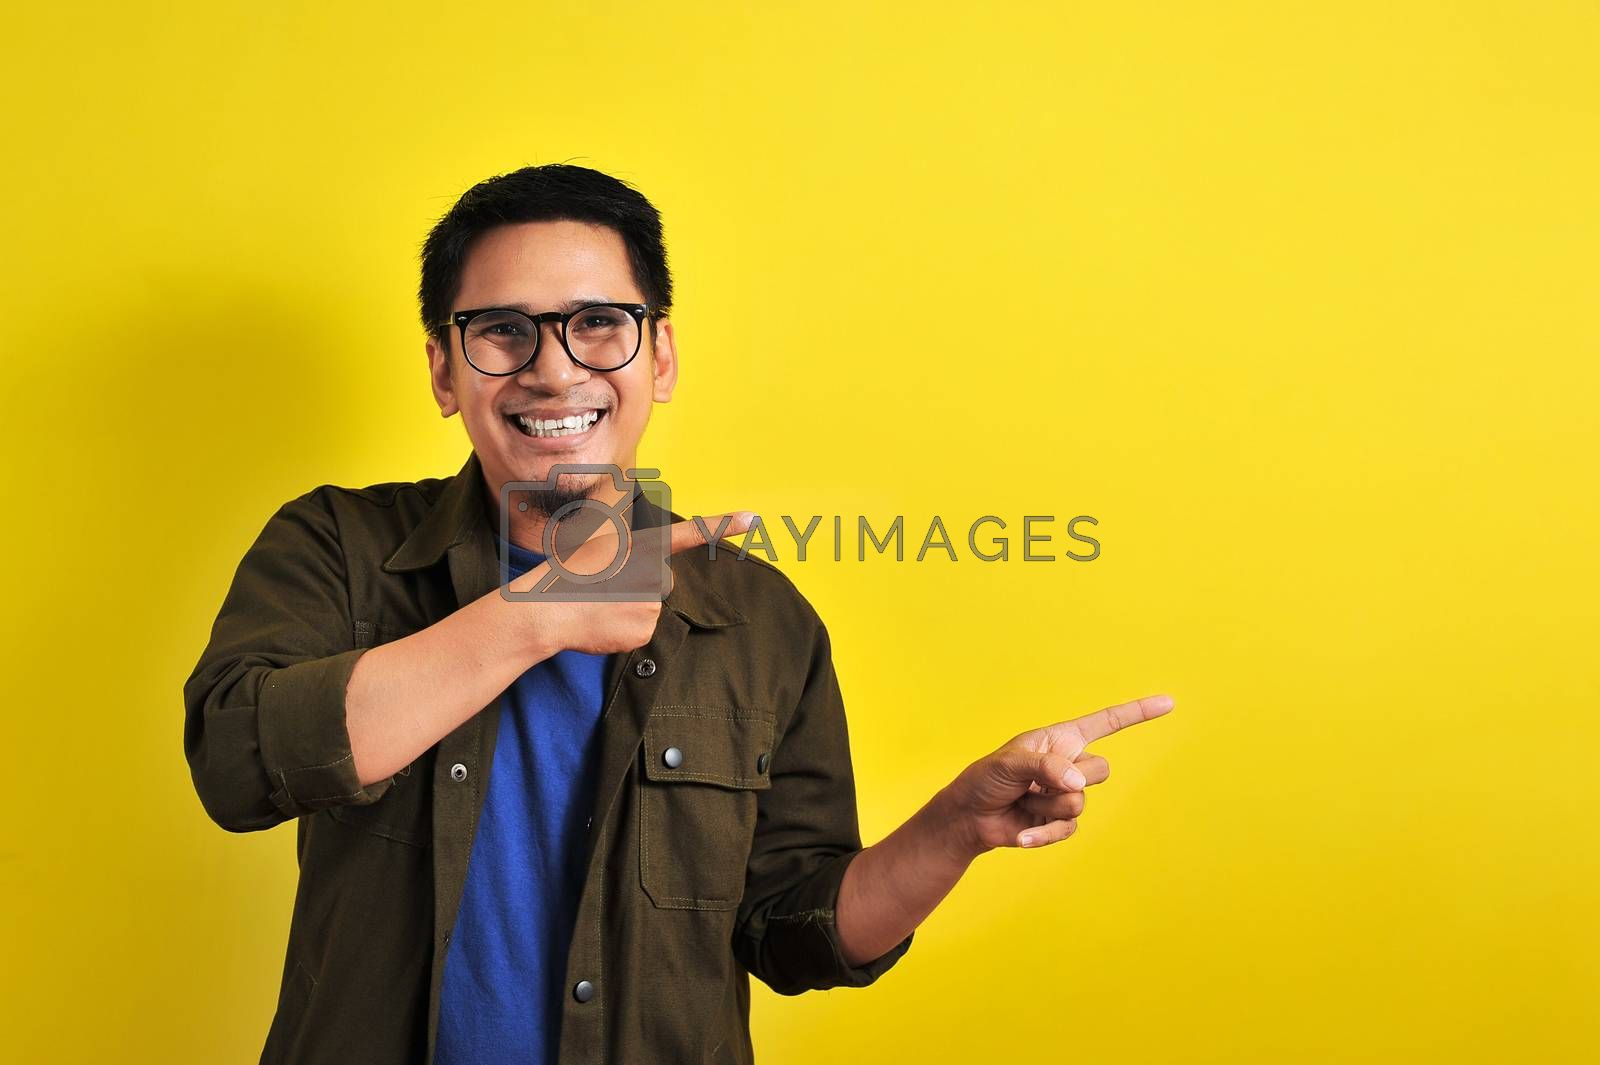 Friendly-looking lively pleasant Asian male with casual t-shirt smiling delighted look at copy space joyful. Self-assured pointing, on yellow background